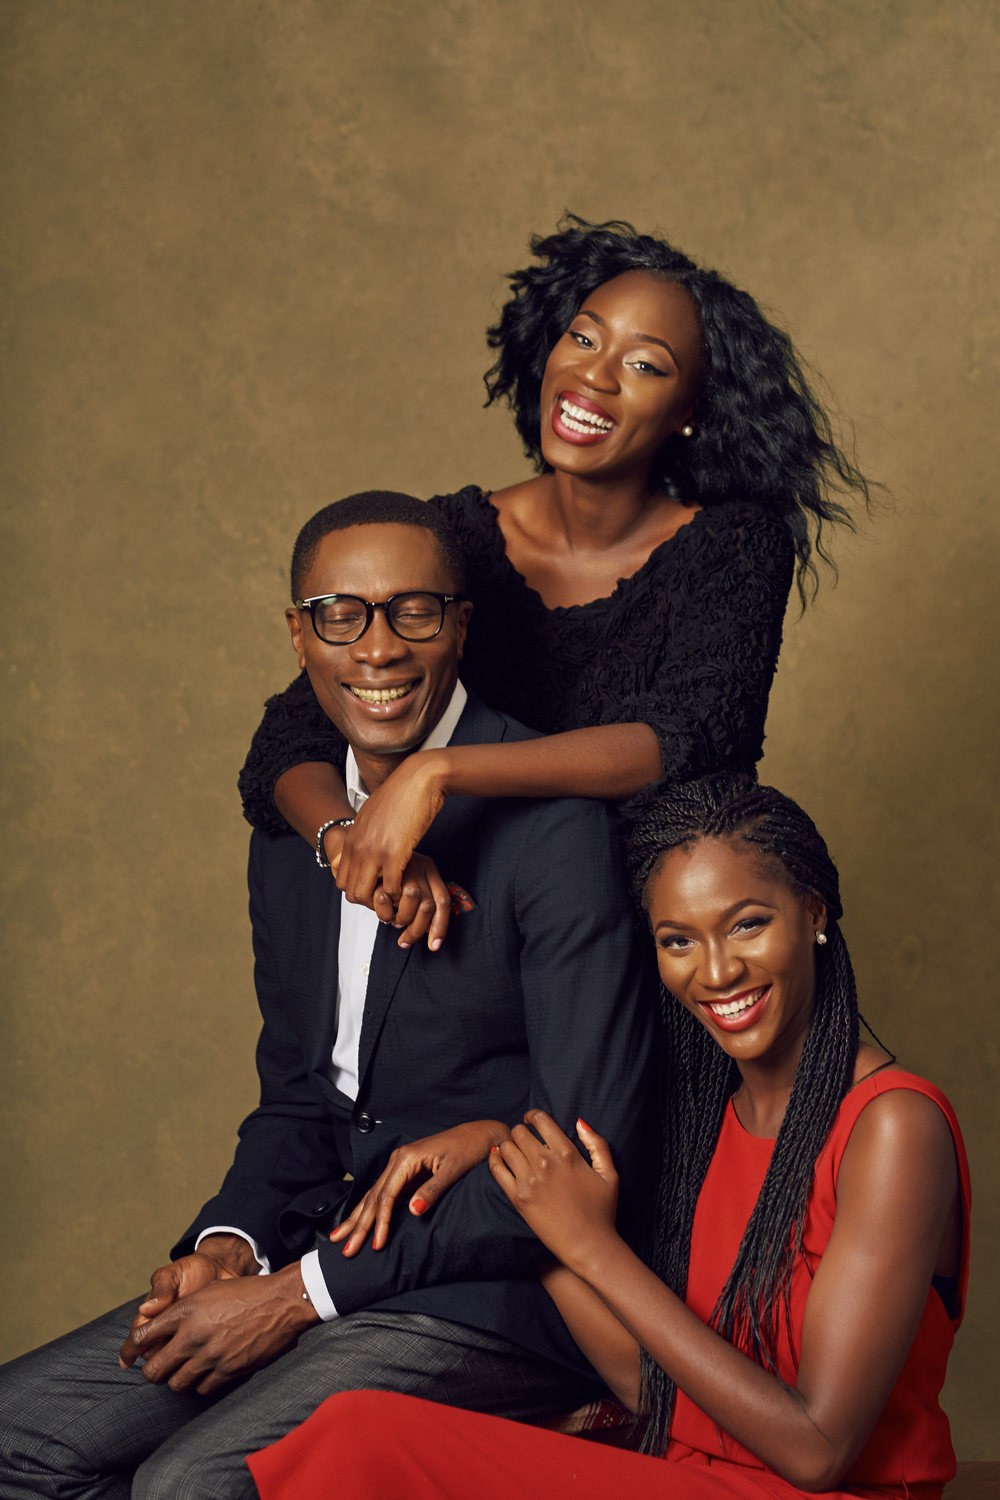 Dr Tony Rapu and his daughters, Uju and Kene Pic Credit: Obi Somto Photography